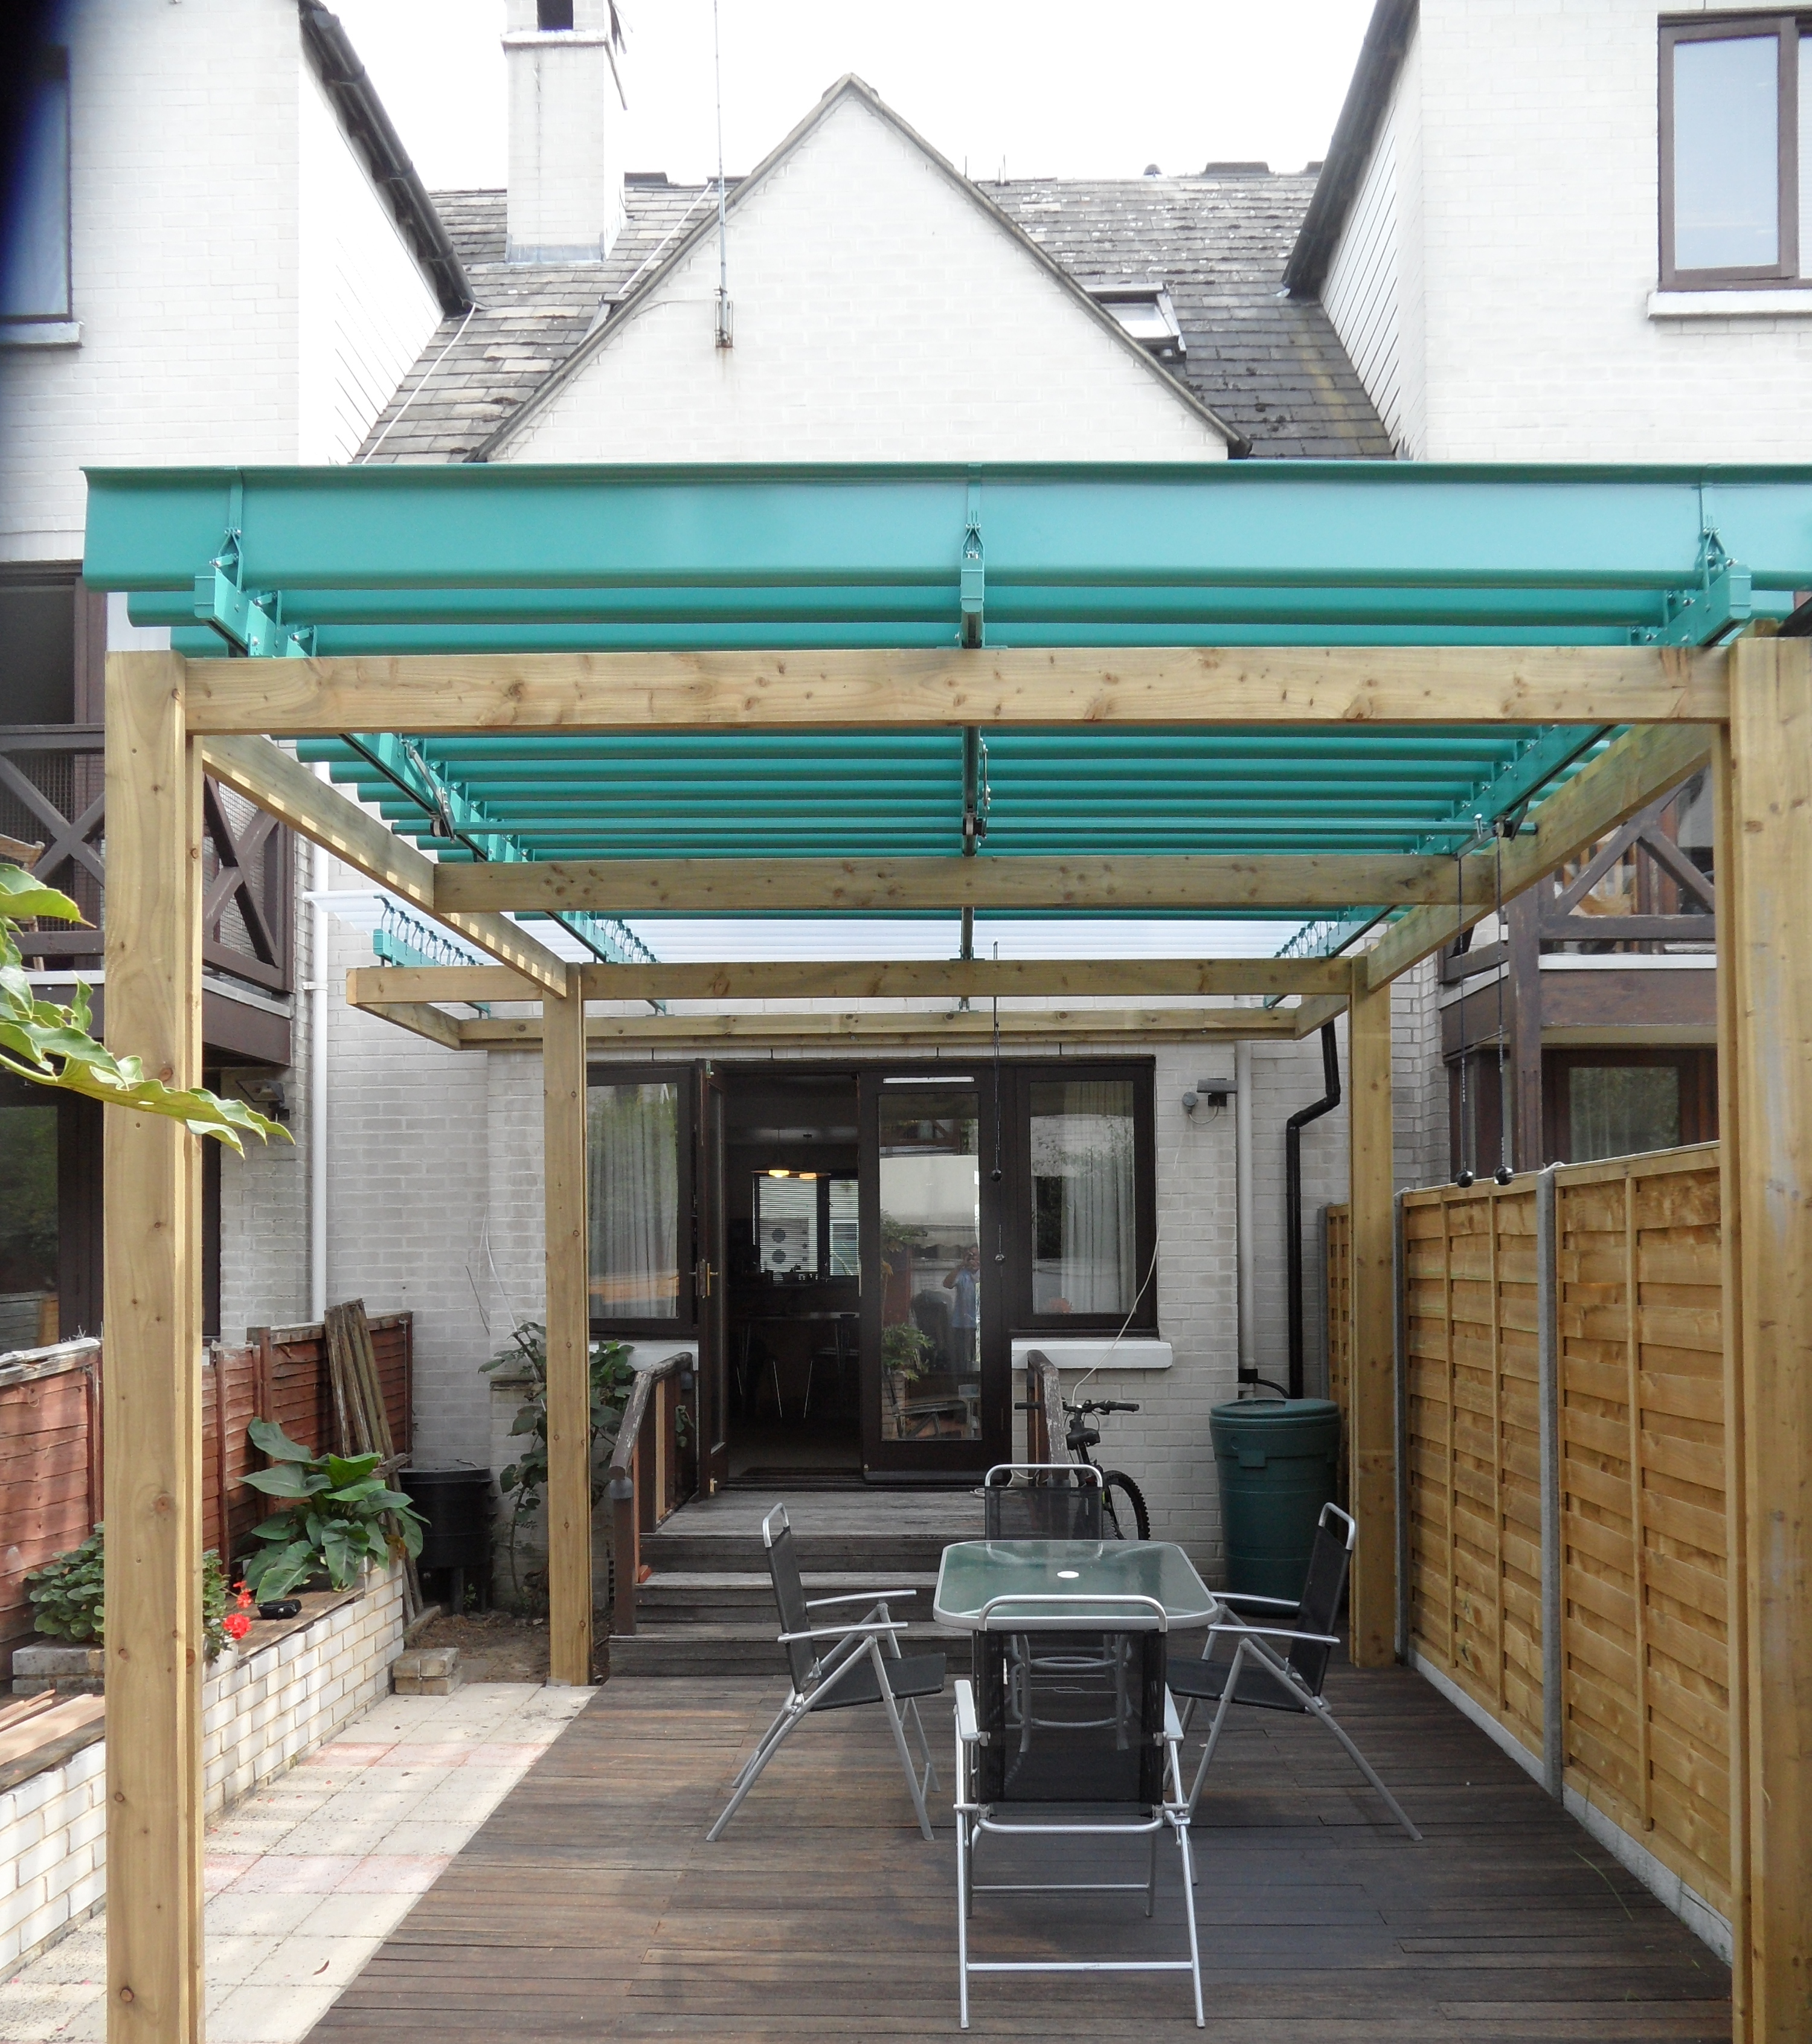 London Roofing Over Existing Deck Area To Provide Shade And